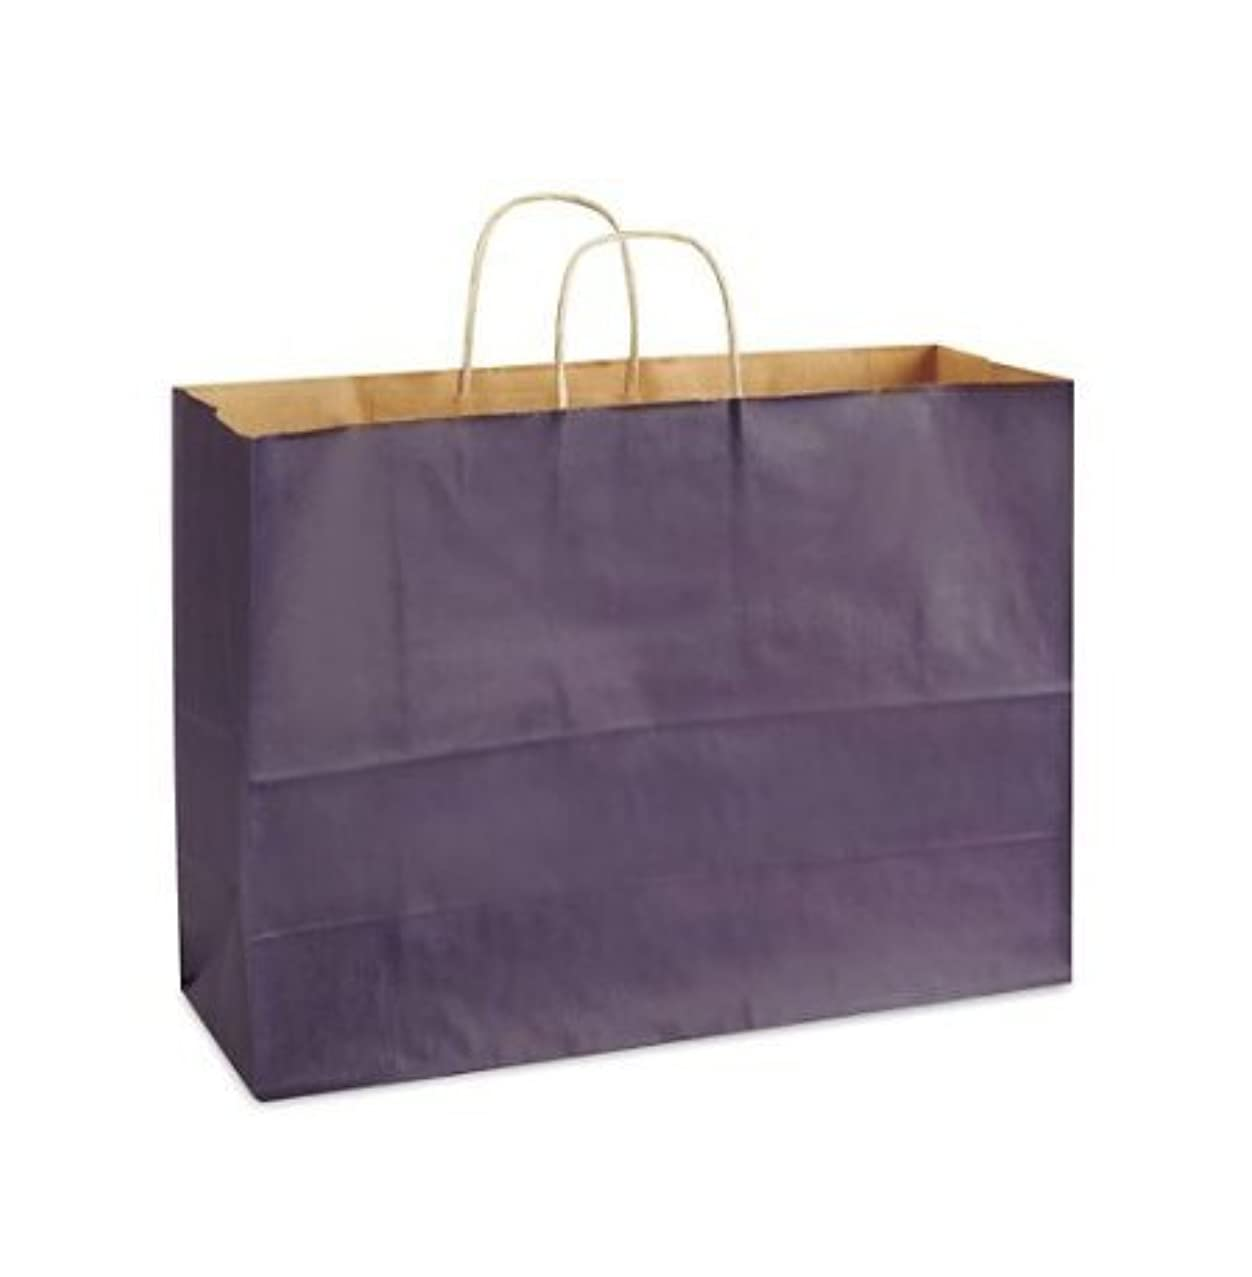 Purple Bags, Extra Large Kraft Paper Gift Wrap Shopping Bags, (Vogue Size 16W x 12H x 6), 25 Bags, Made in USA